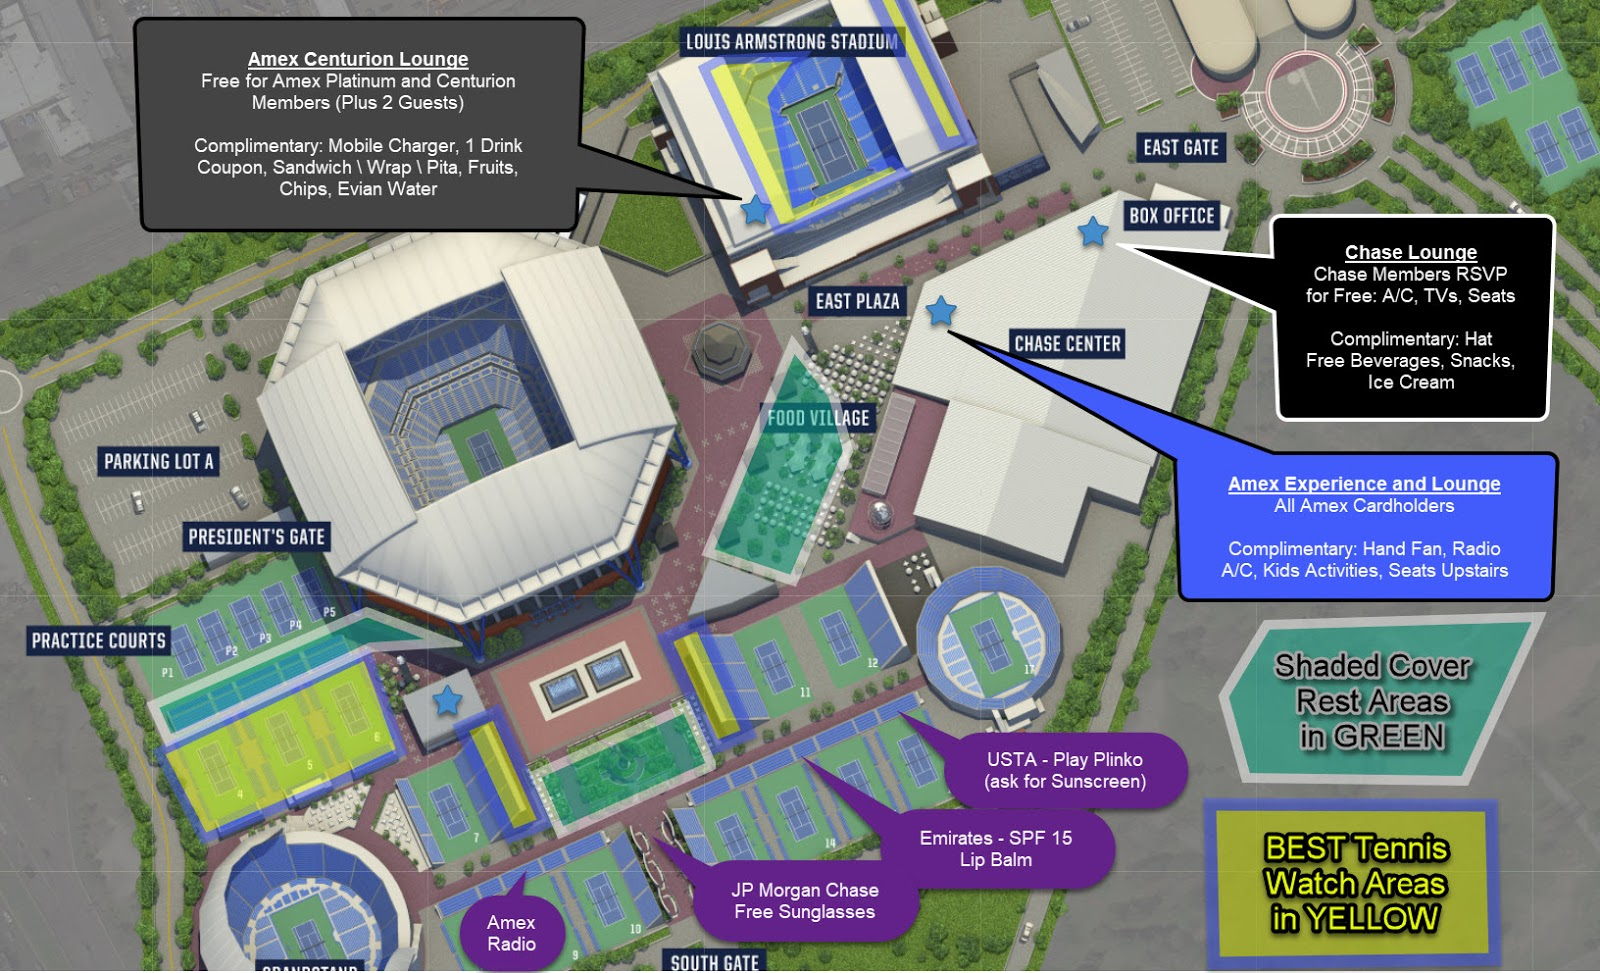 Us Open Tennis Location Map Tennis Bargains: Tennis Reviews, US Open Deals, USTA Promos: US